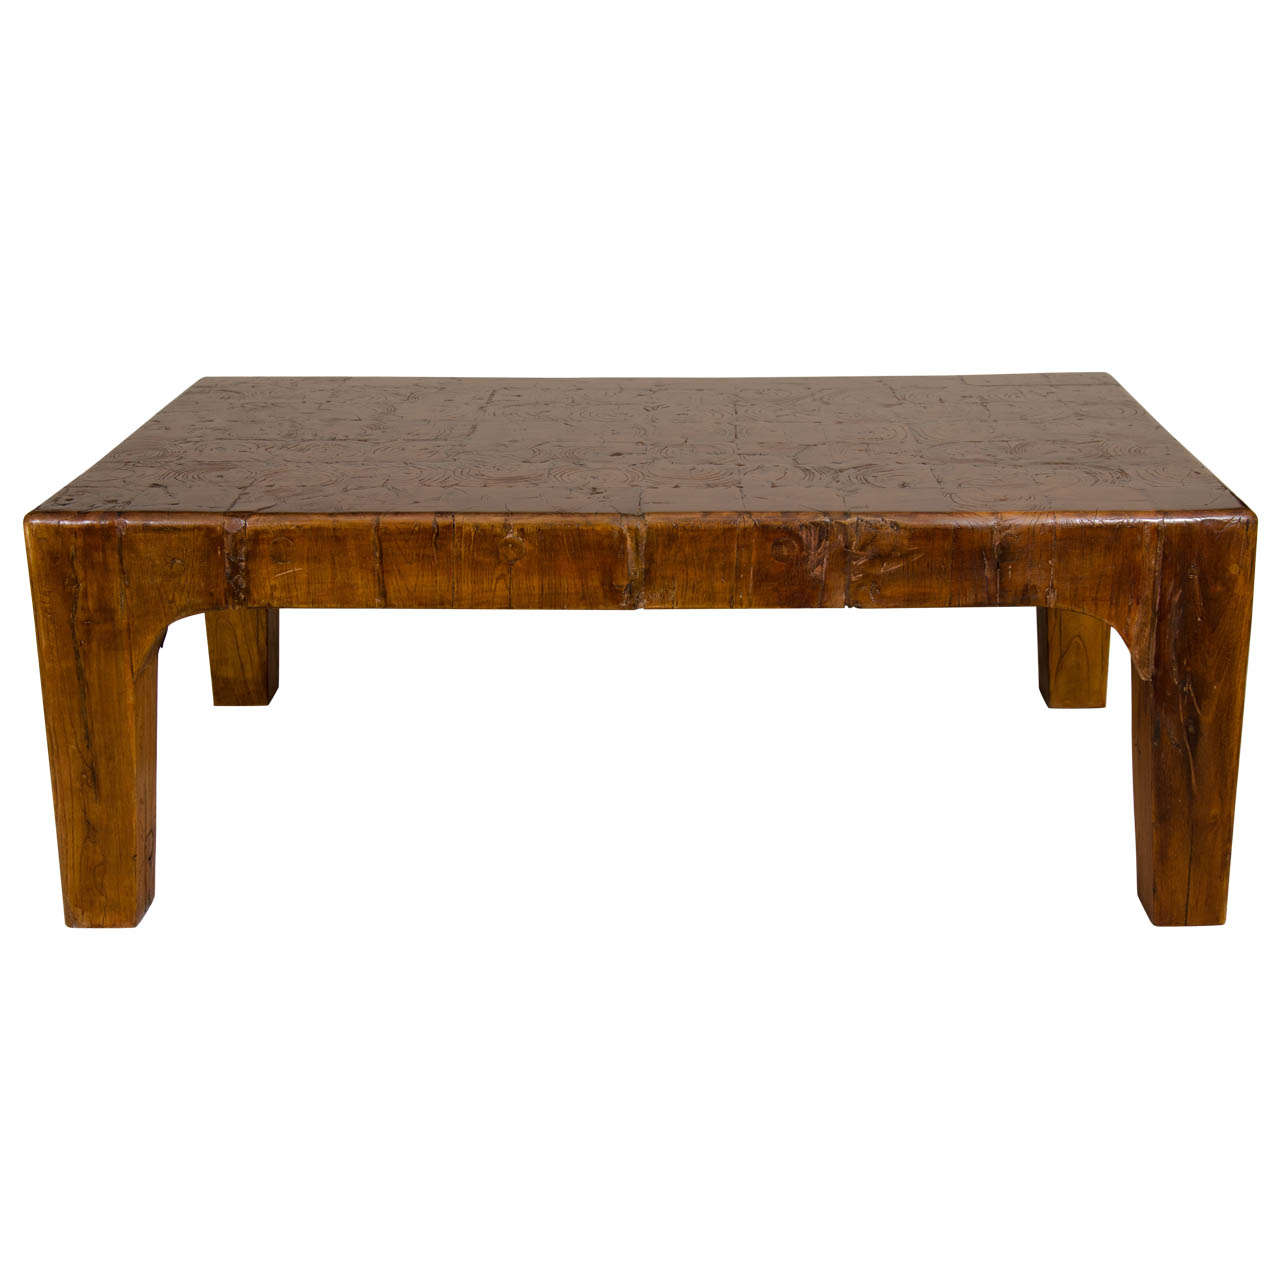 A Mid Century Solid Wood Block Rectangular Shaped Coffee Or Cocktail Table For Sale At 1stdibs